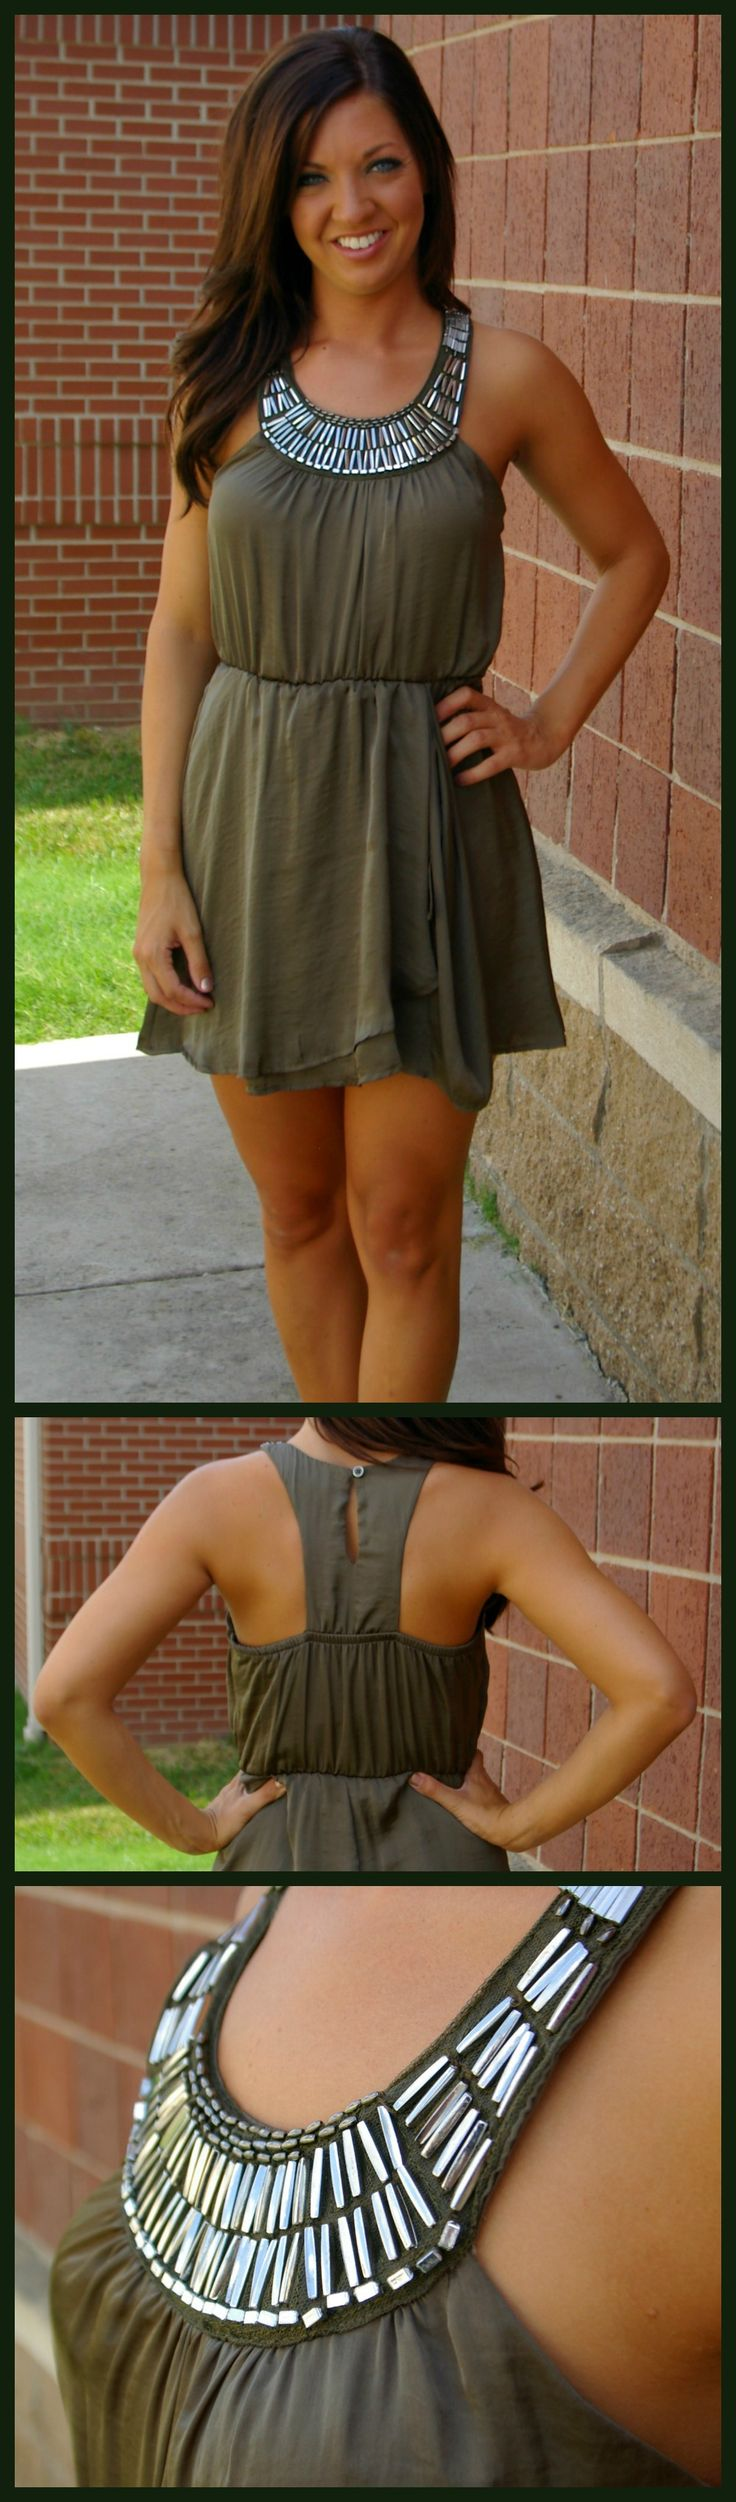 This is a perfect summer dress! $43.00 Click here to find it online: http://amaranthcollection.com/collections/dresses/products/olive-you-too-dress